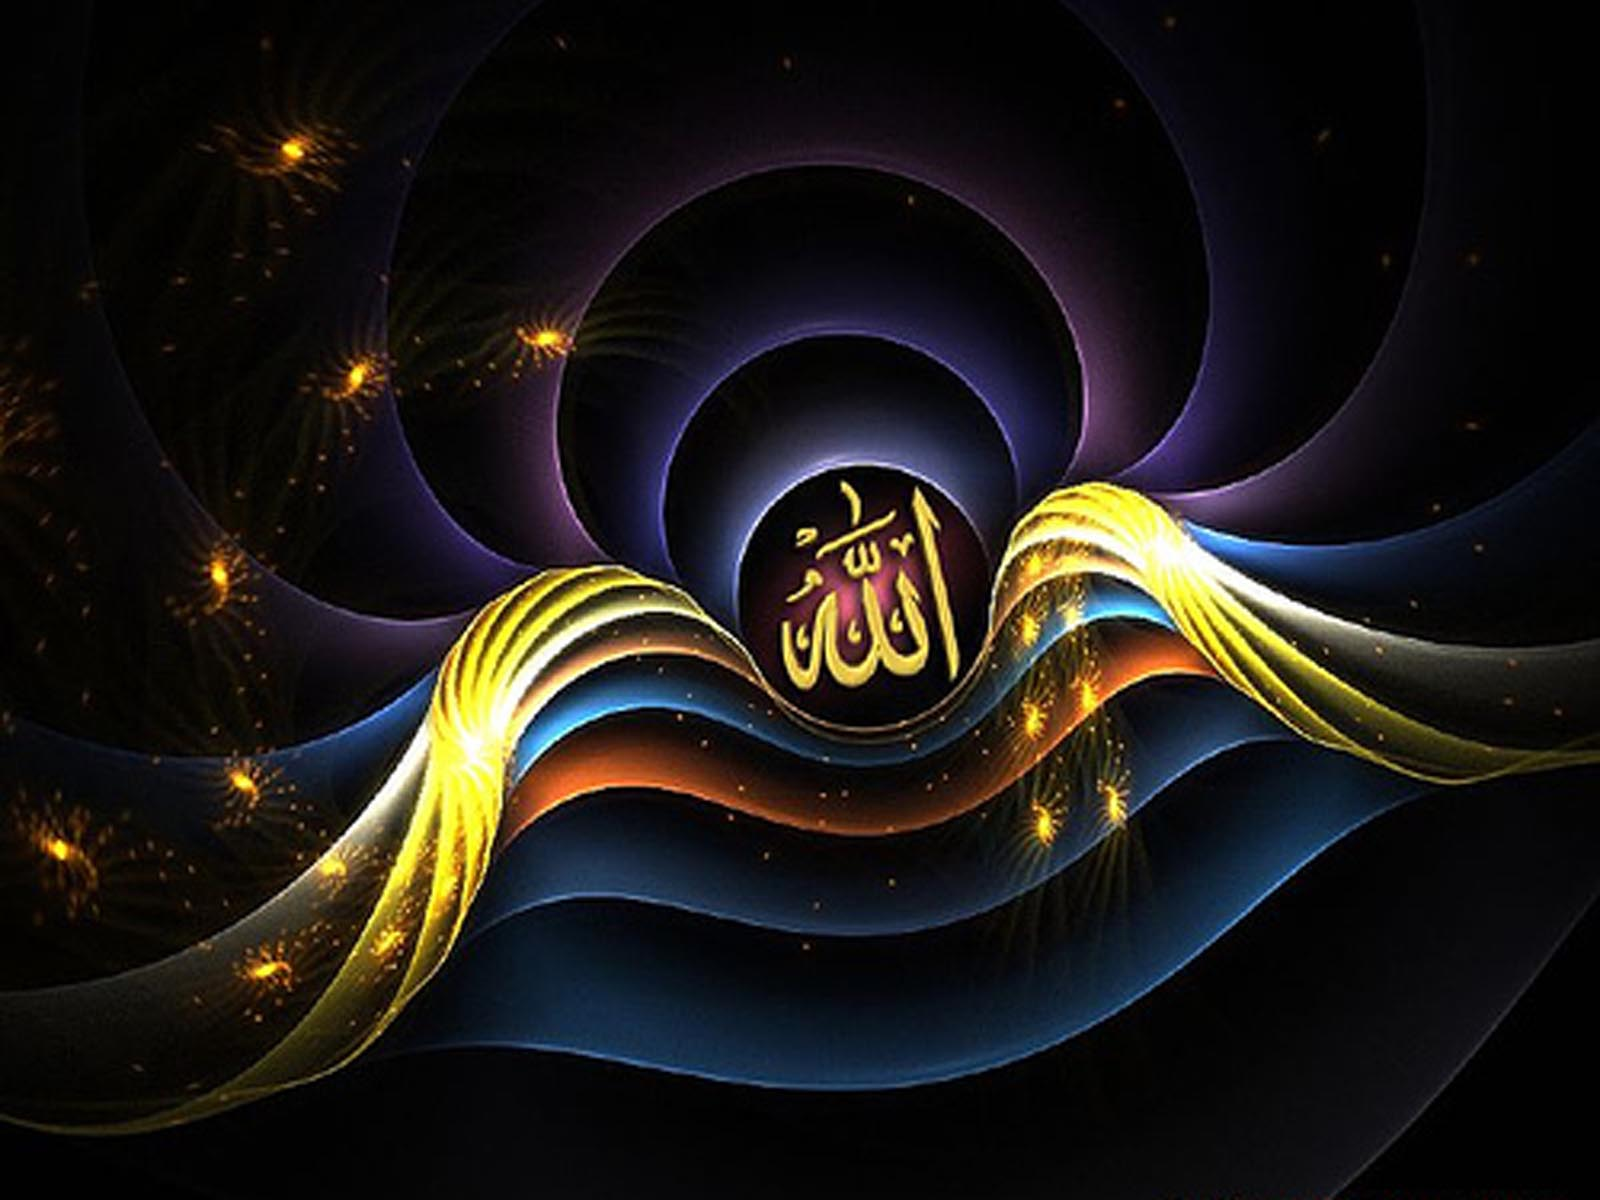 Free Download Wallpaper 4 Allah Name Wallpaper 5 Allah Name